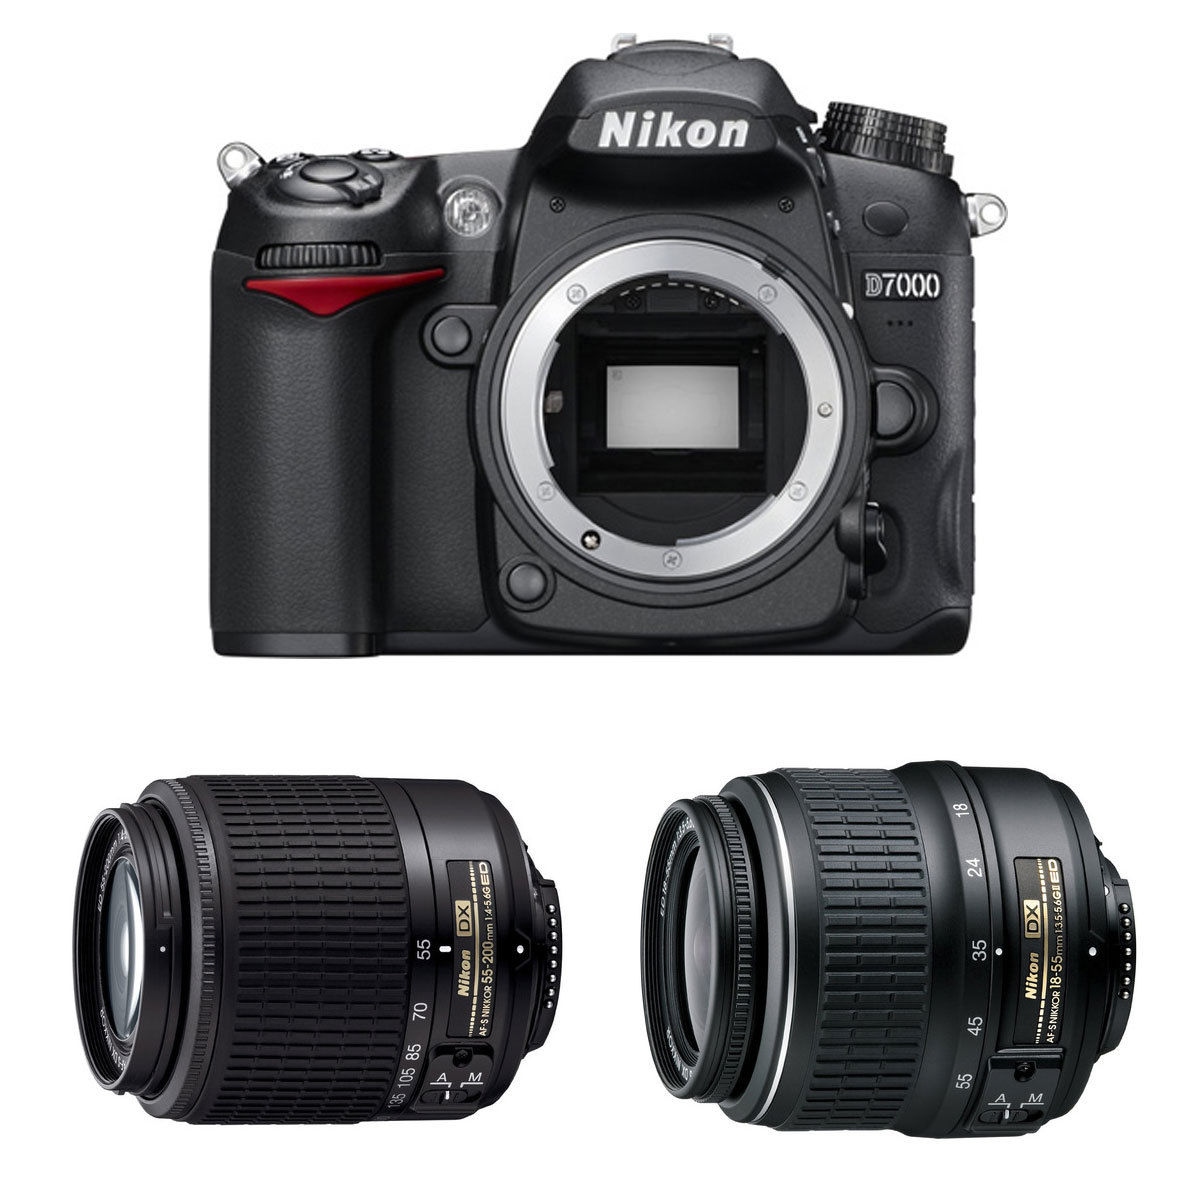 Nikon d7000 with two lens